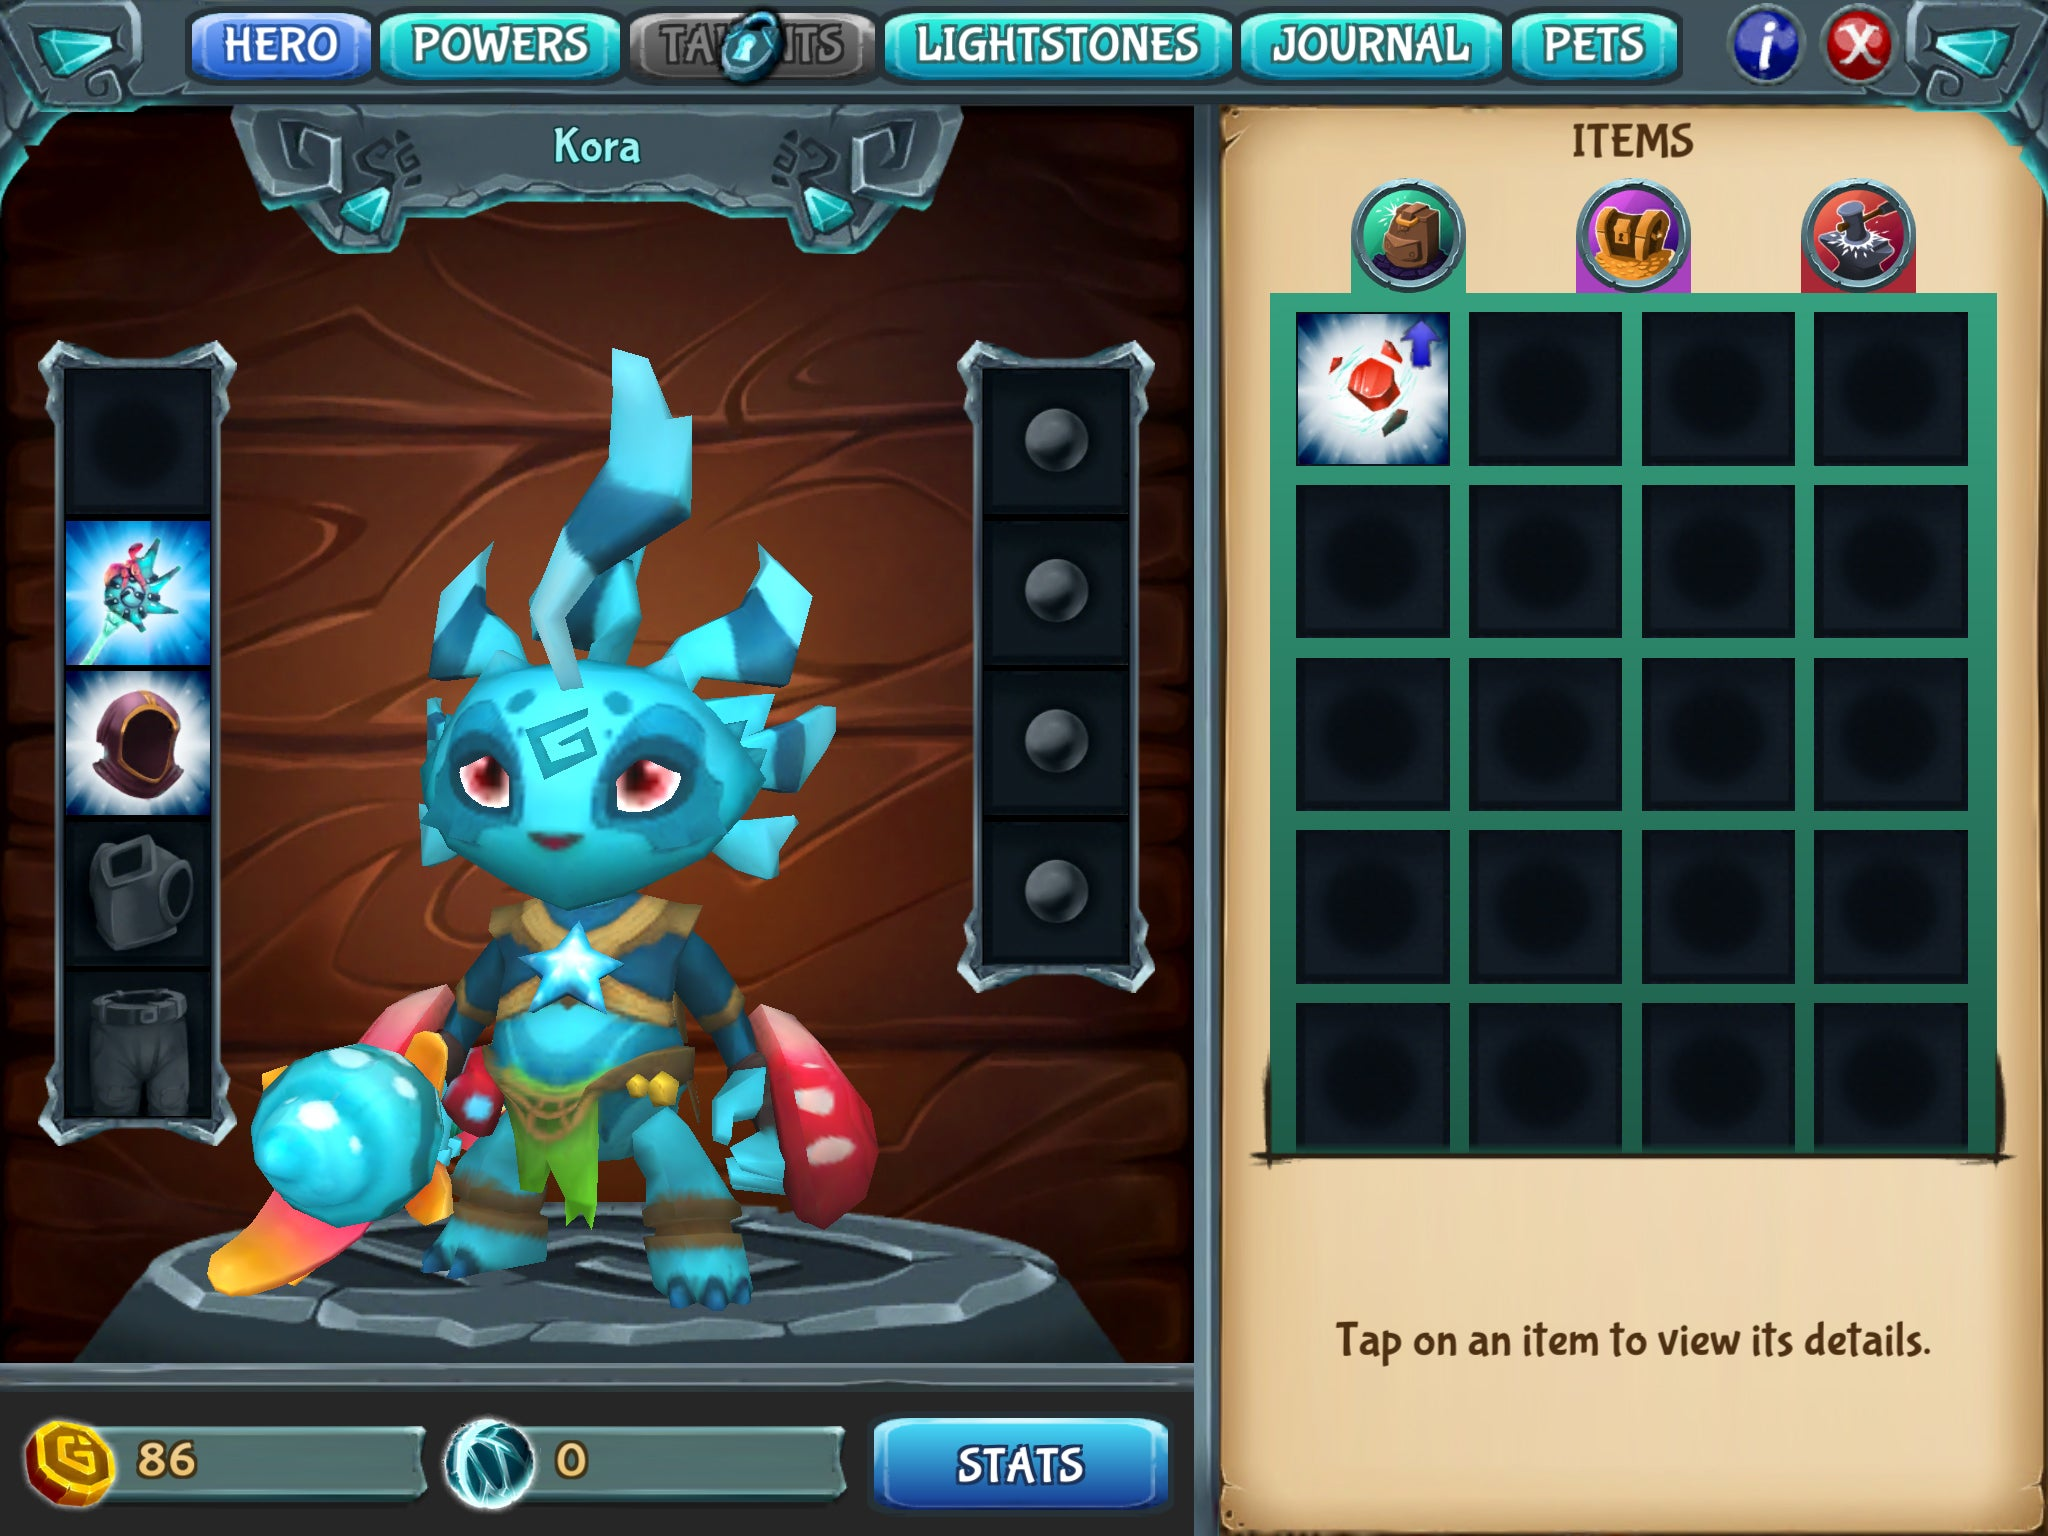 Toys-to-Life RPG Lightseekers Is Pretty Good Without The Toys